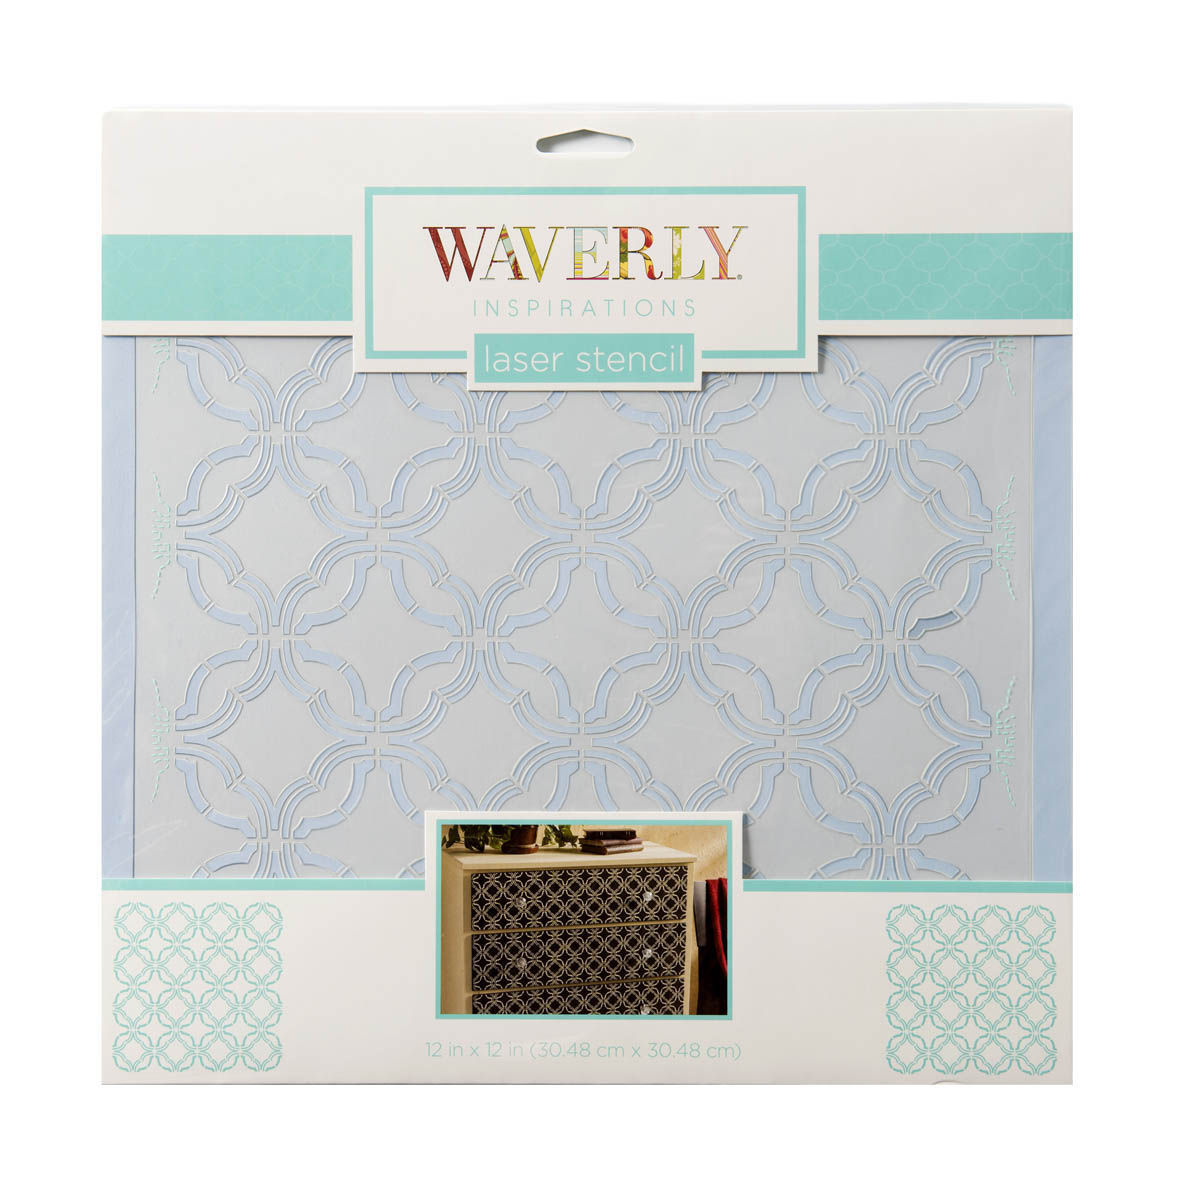 Waverly ® Inspirations Laser Stencils - Décor - Mini Geo, 12